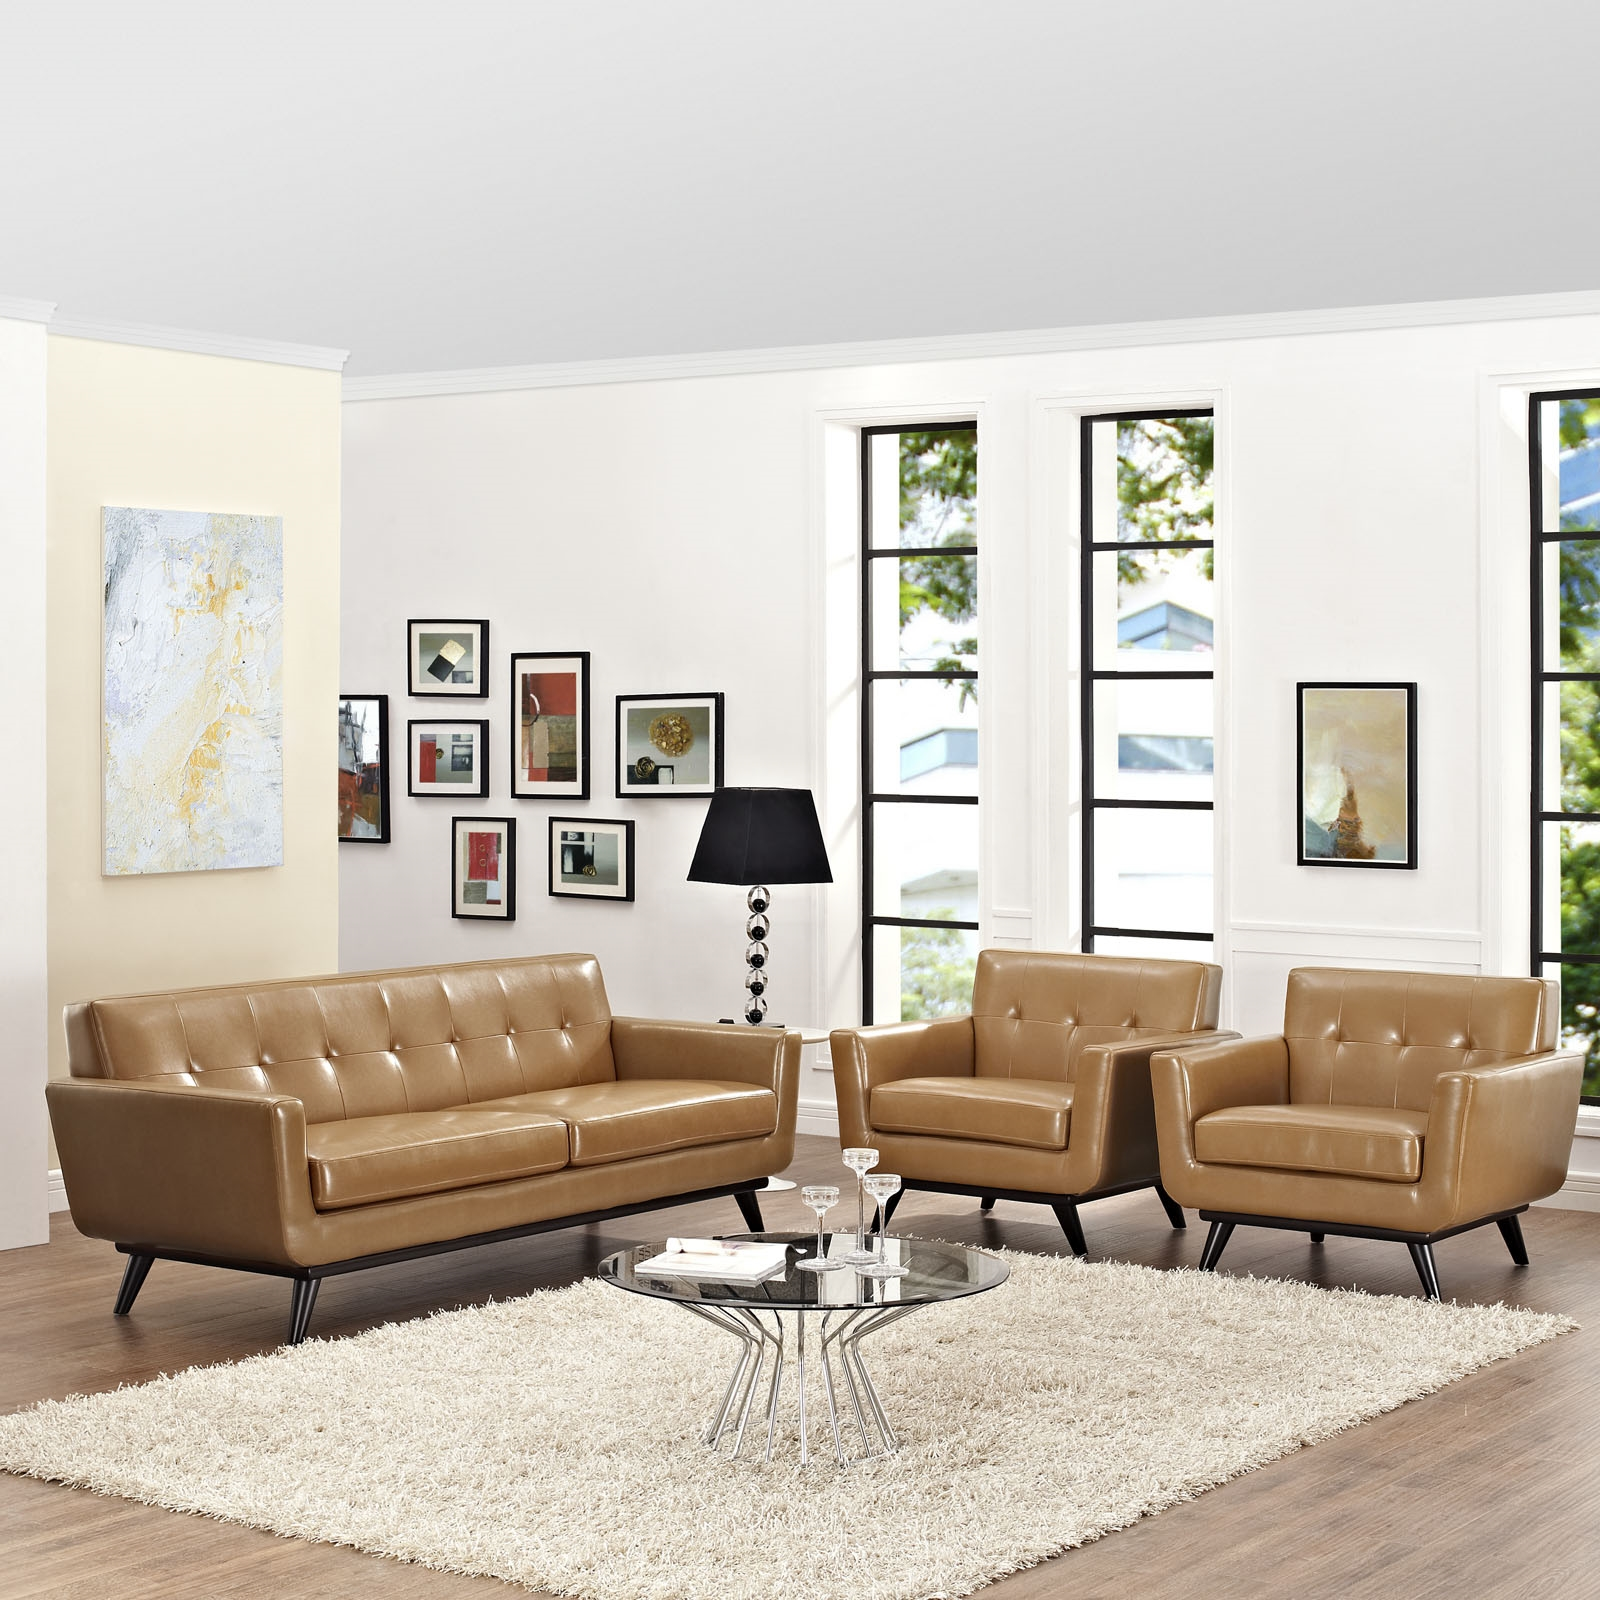 Engage 3 Piece Leather Living Room Set in Tan